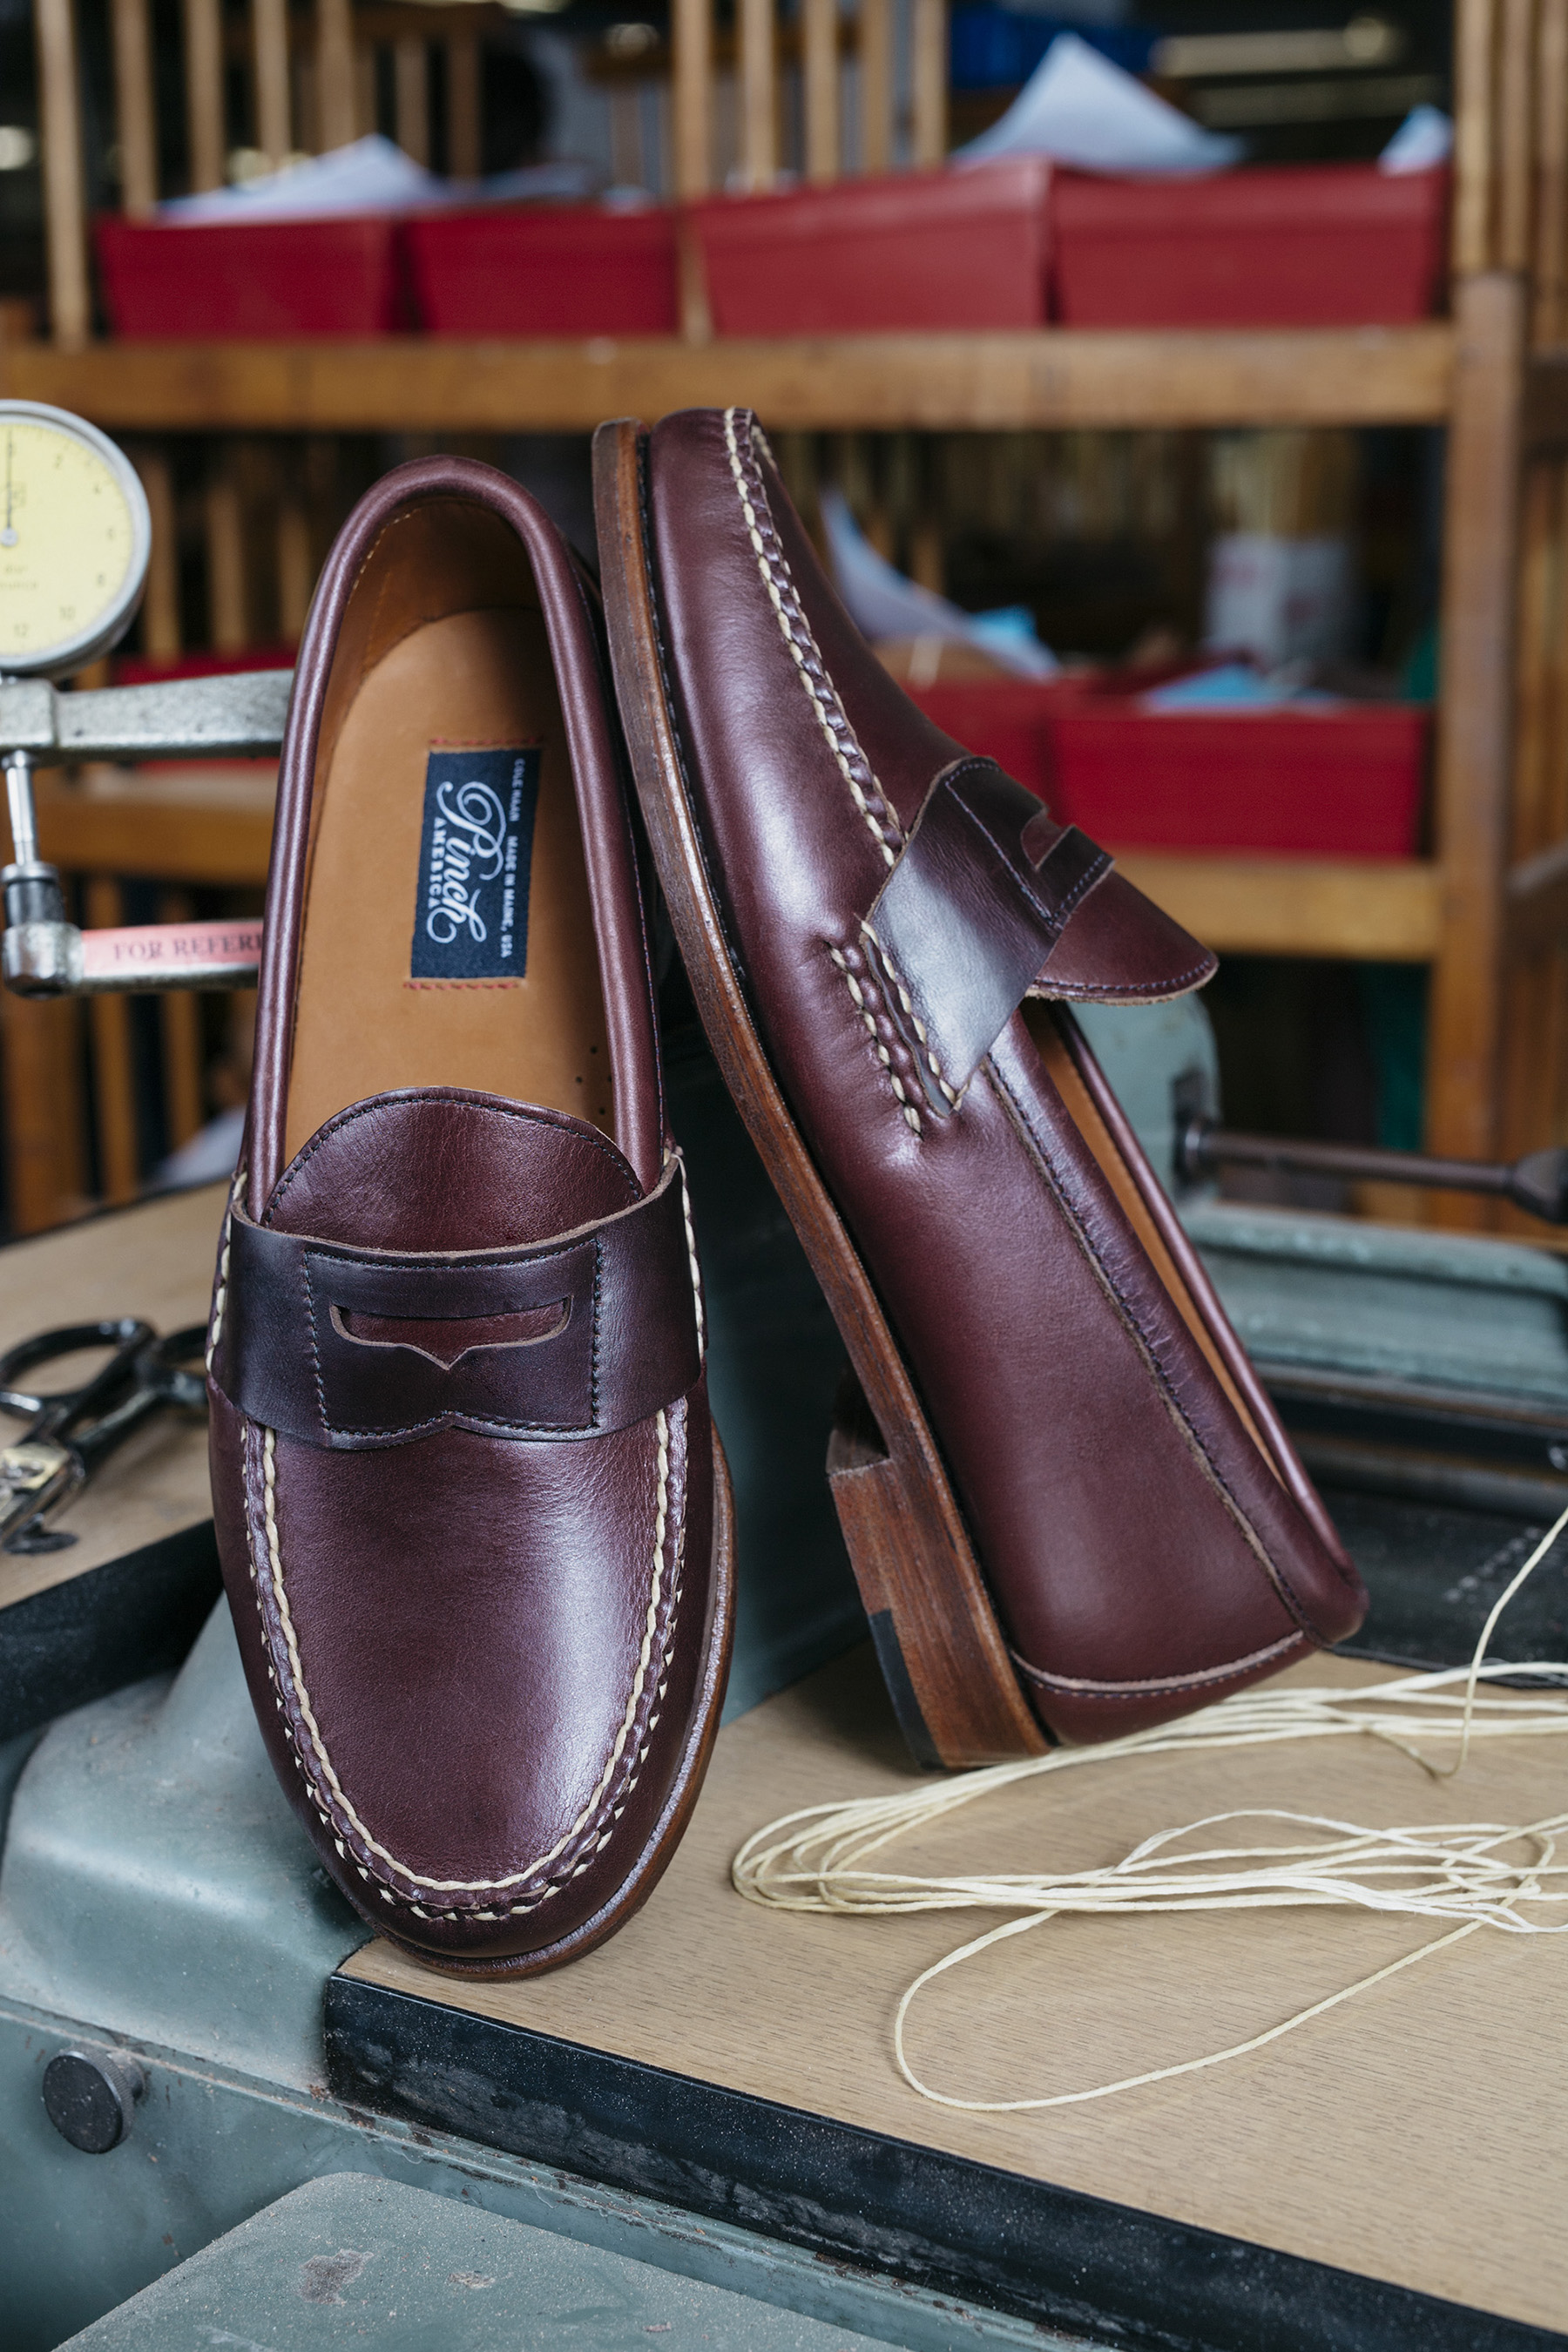 cole haan shoes thailand news 2018 songs indian 711162